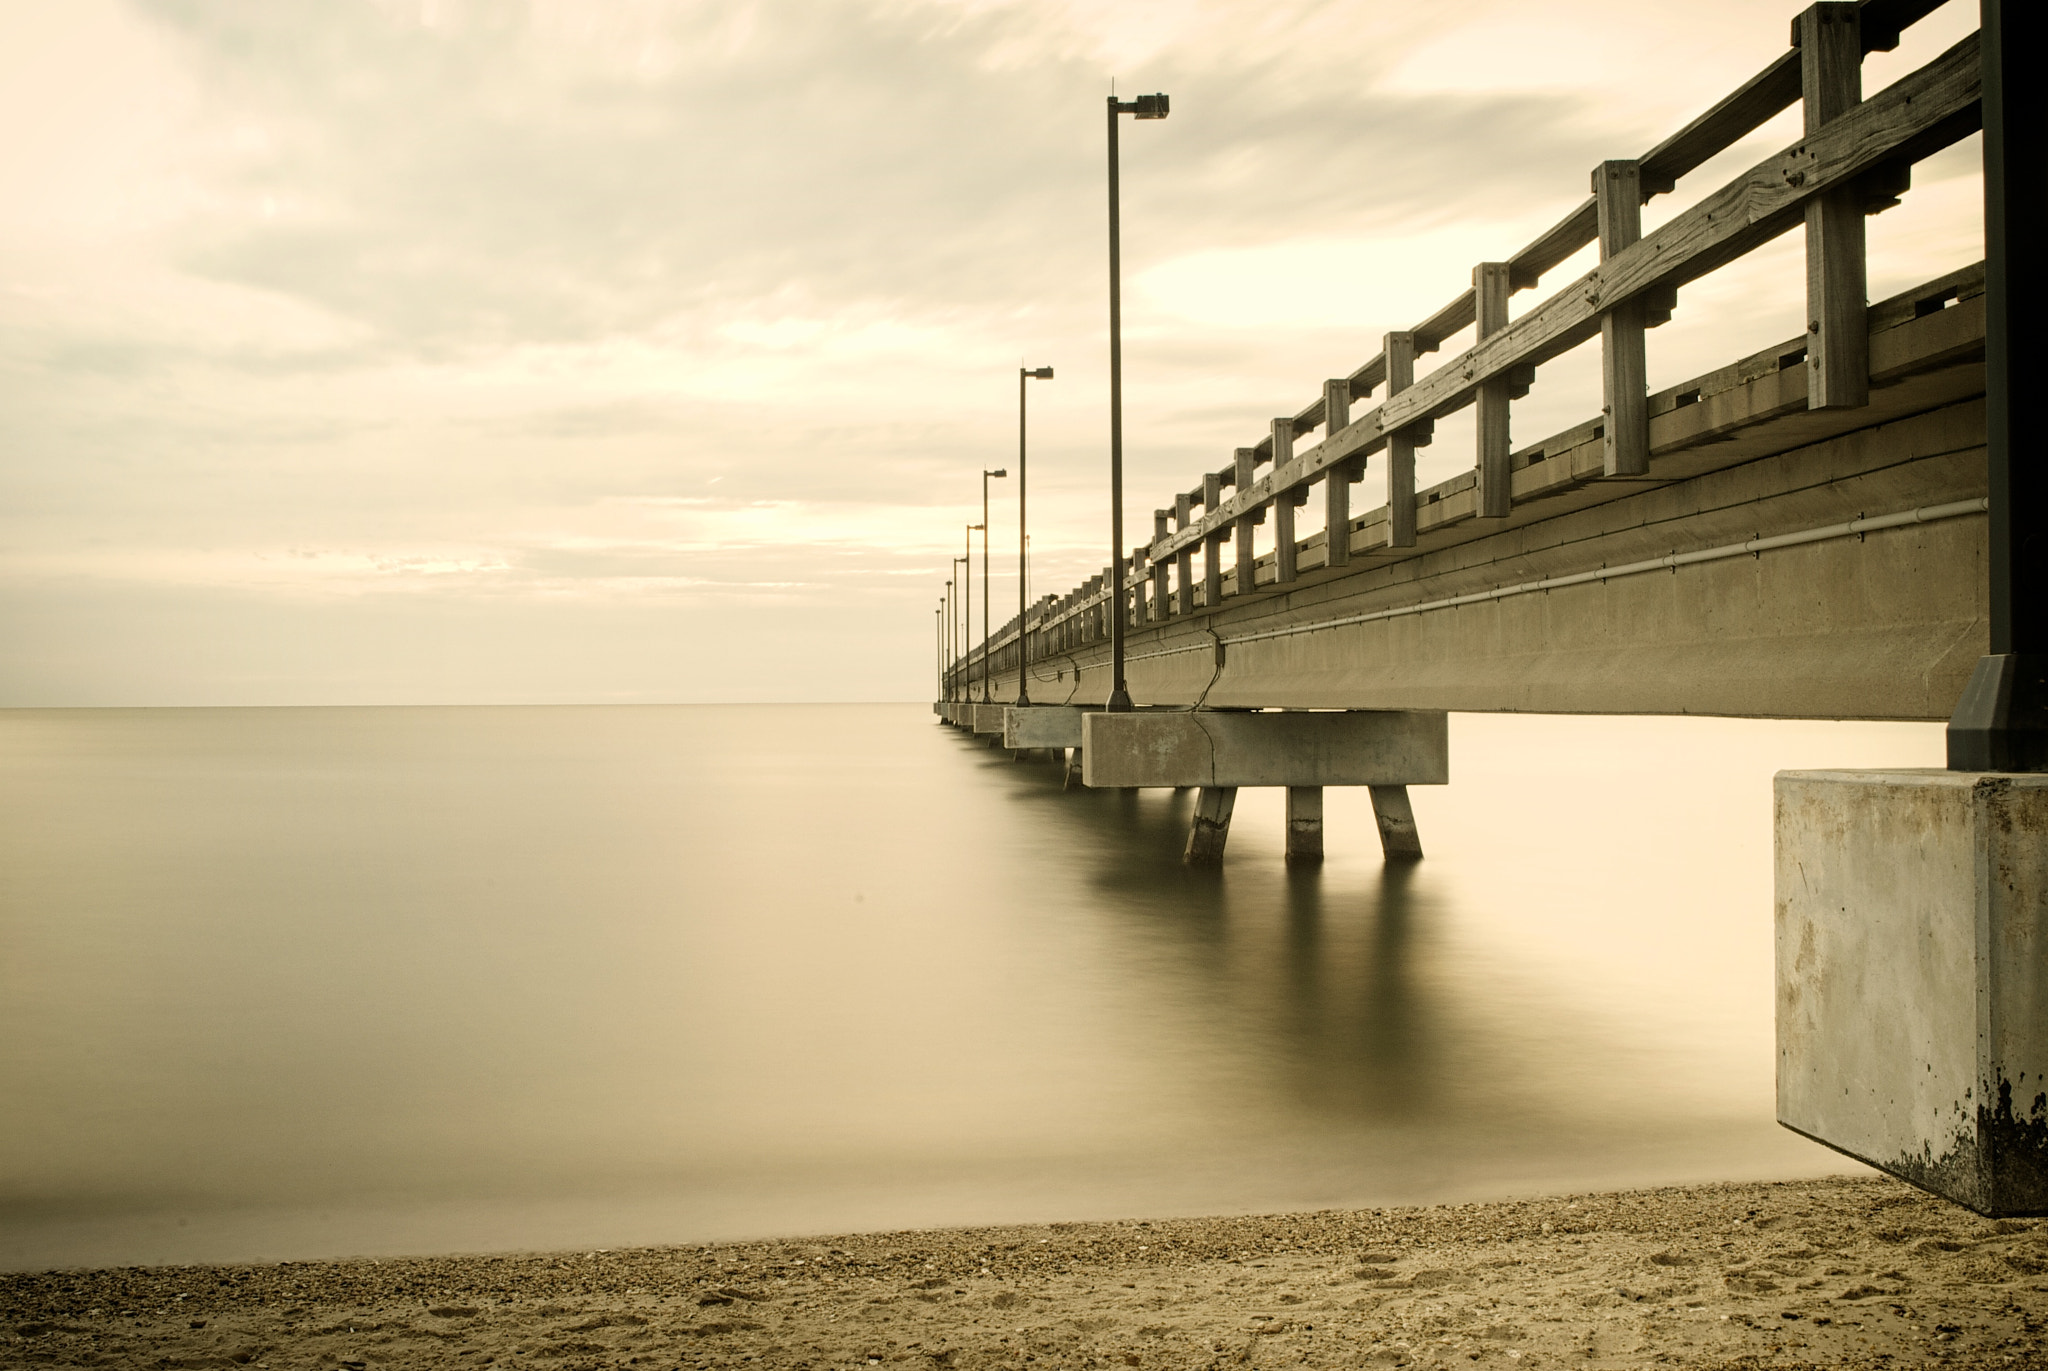 Photograph Perspectives by Andrew Murdock on 500px